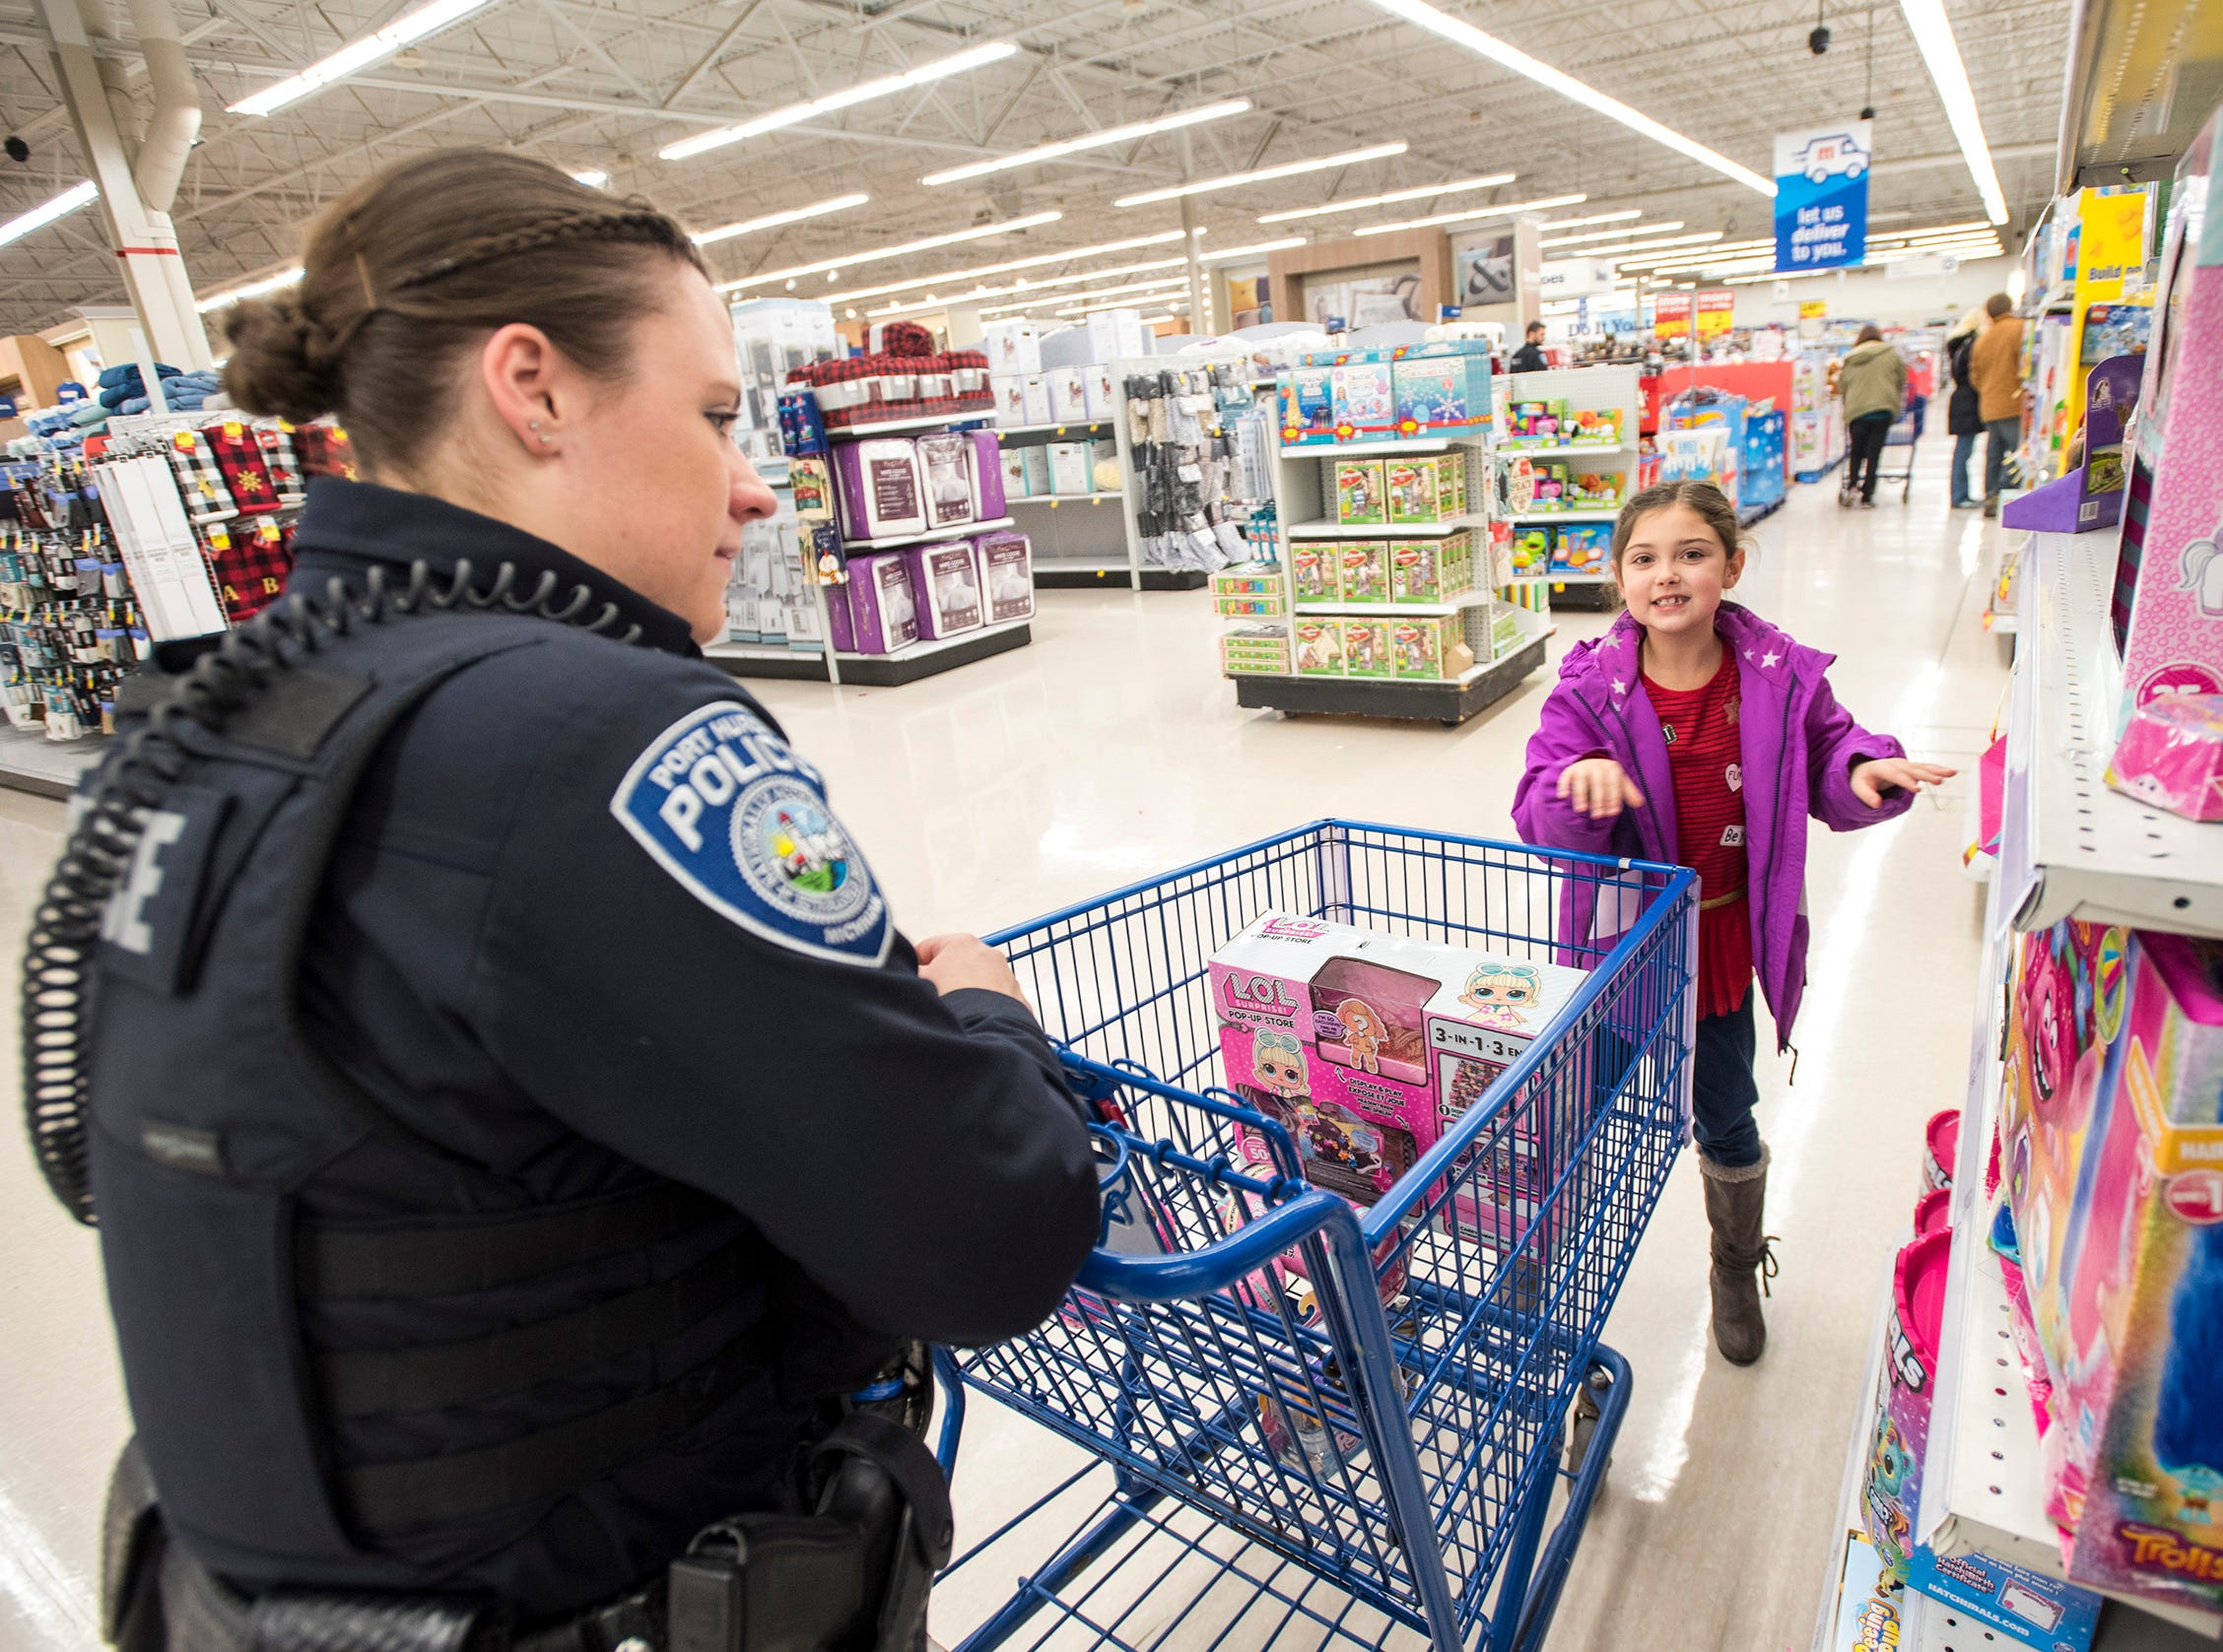 Port Huron Police Officer Sarah Cook, left, helps Tayler Hamilton, 7, shop at Christmas with a Cop Tuesday, Dec. 11, 2018 at Meijer in Fort Gratiot.